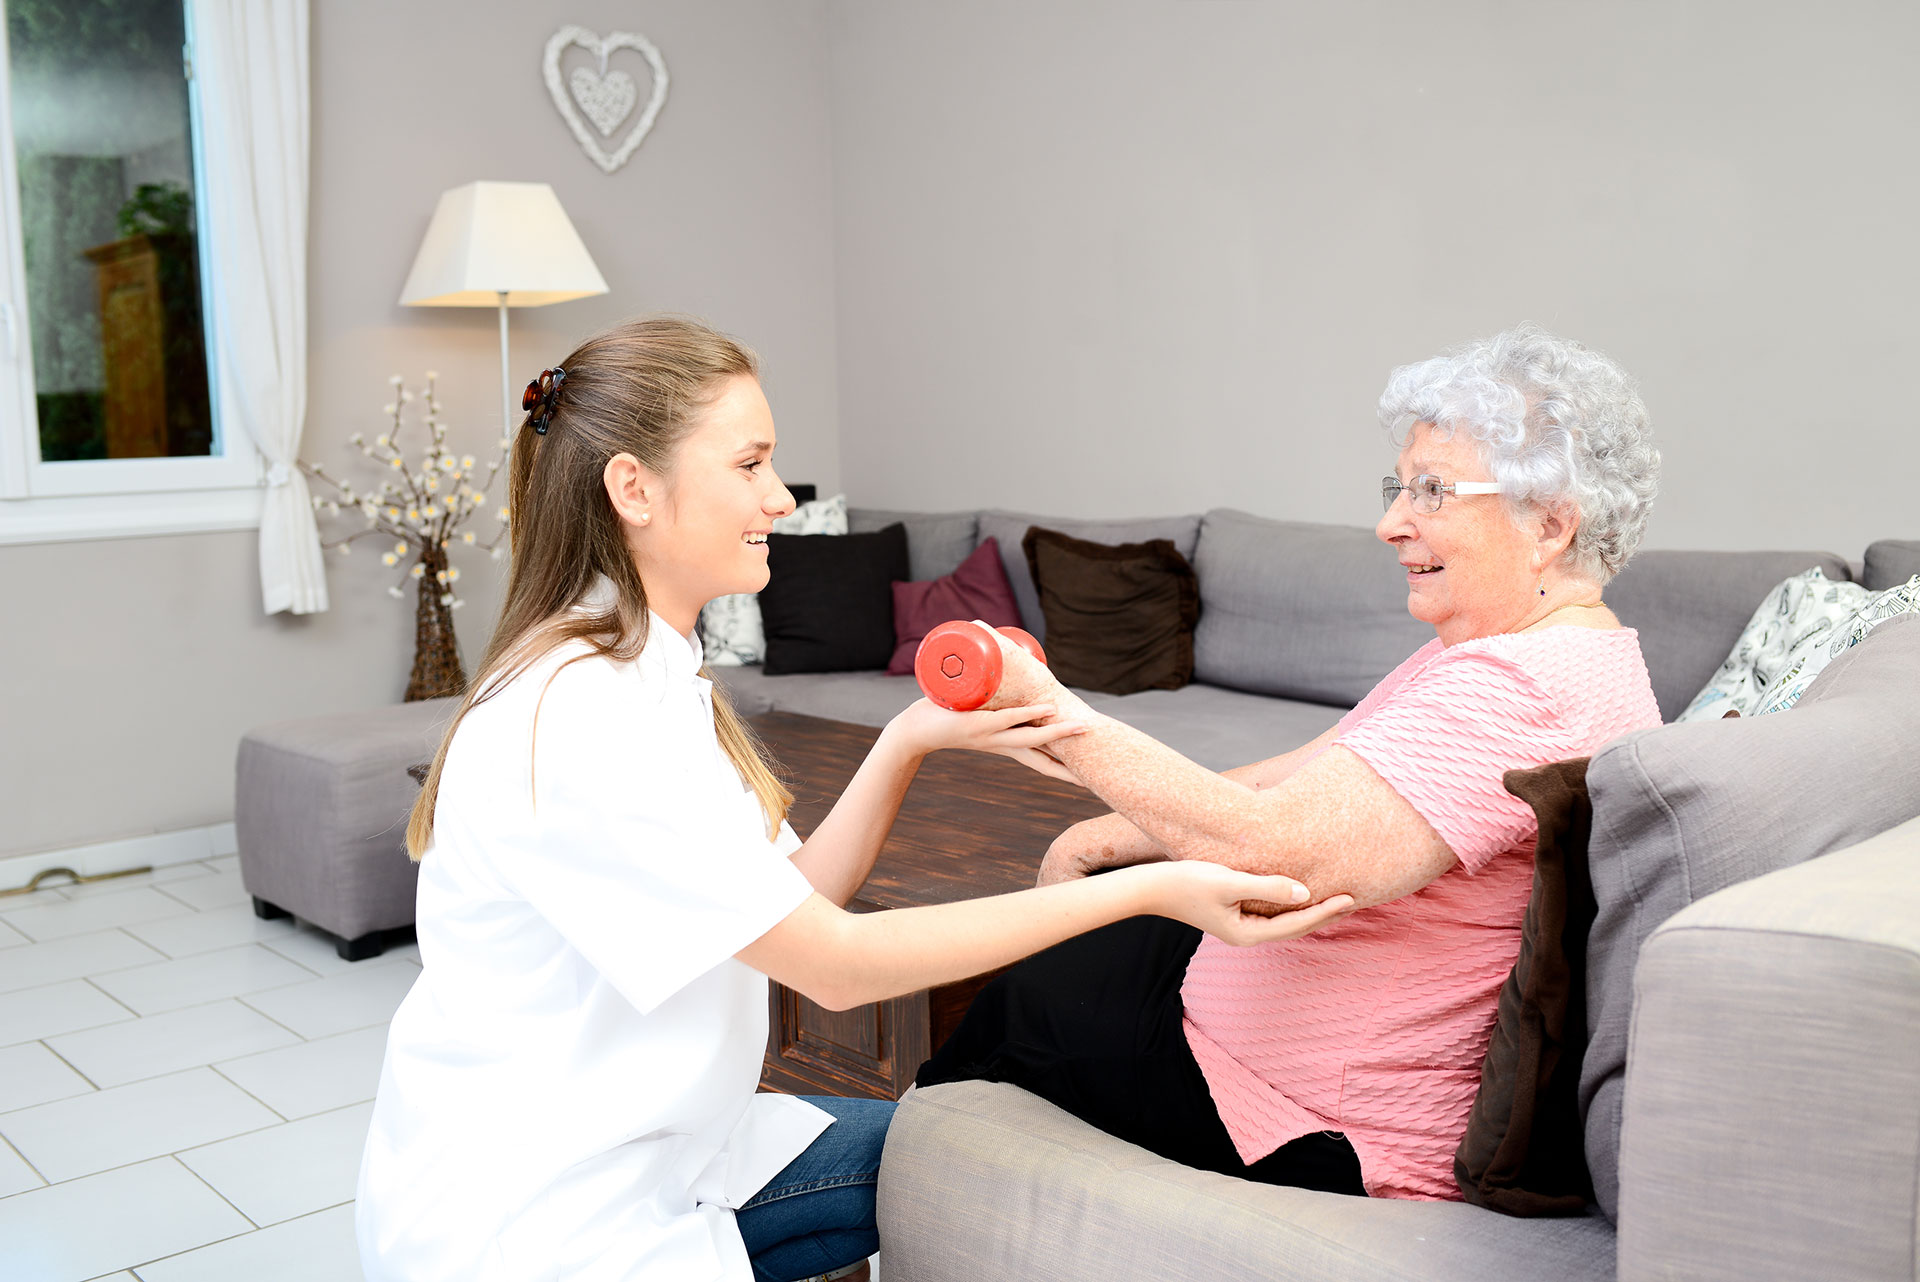 Physiotherapy and rehabilitation in the home